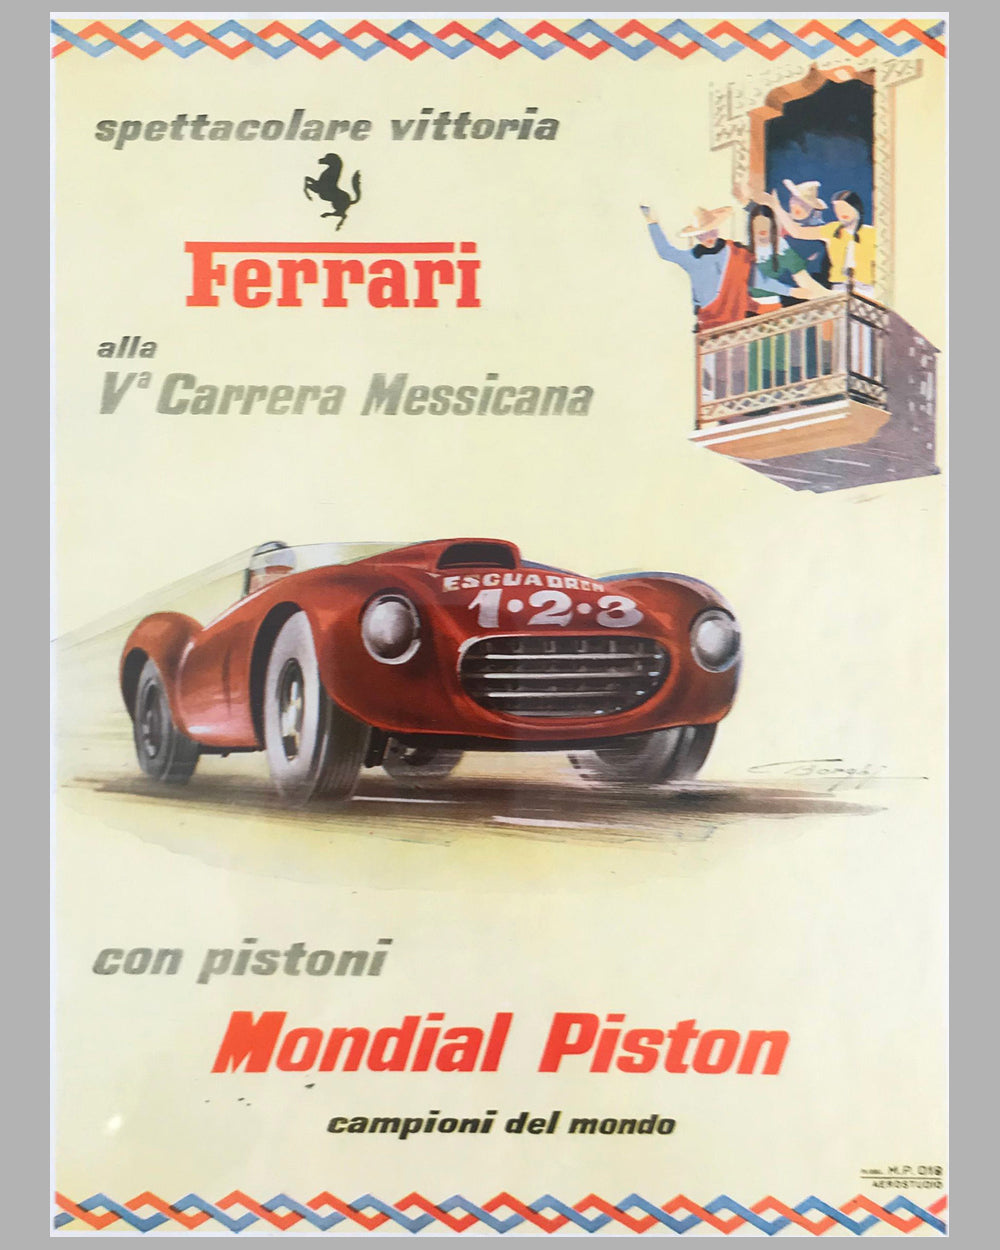 Ferrari and Mondial Piston ad in Motor Italia magazine